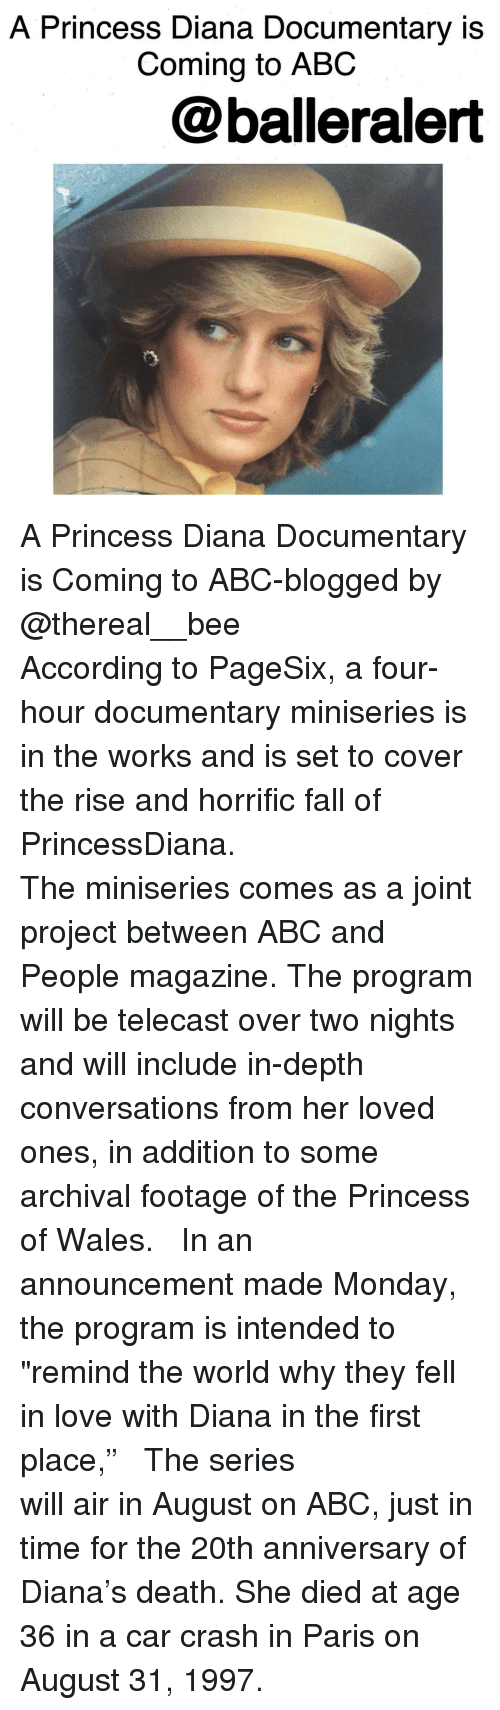 "Abc, Fall, and Love: A Princess Diana Documentary is  Coming to ABC  @balleralert A Princess Diana Documentary is Coming to ABC-blogged by @thereal__bee ⠀⠀⠀⠀⠀⠀⠀⠀⠀ ⠀⠀⠀⠀⠀⠀⠀⠀⠀ According to PageSix, a four-hour documentary miniseries is in the works and is set to cover the rise and horrific fall of PrincessDiana. ⠀⠀⠀⠀⠀⠀⠀⠀⠀ ⠀⠀⠀⠀⠀⠀⠀⠀⠀ The miniseries comes as a joint project between ABC and People magazine. The program will be telecast over two nights and will include in-depth conversations from her loved ones, in addition to some archival footage of the Princess of Wales. ⠀⠀⠀⠀⠀⠀⠀⠀⠀ ⠀⠀⠀⠀⠀⠀⠀⠀⠀ In an announcement made Monday, the program is intended to ""remind the world why they fell in love with Diana in the first place,"" ⠀⠀⠀⠀⠀⠀⠀⠀⠀ ⠀⠀⠀⠀⠀⠀⠀⠀⠀ The series will air in August on ABC, just in time for the 20th anniversary of Diana's death. She died at age 36 in a car crash in Paris on August 31, 1997."